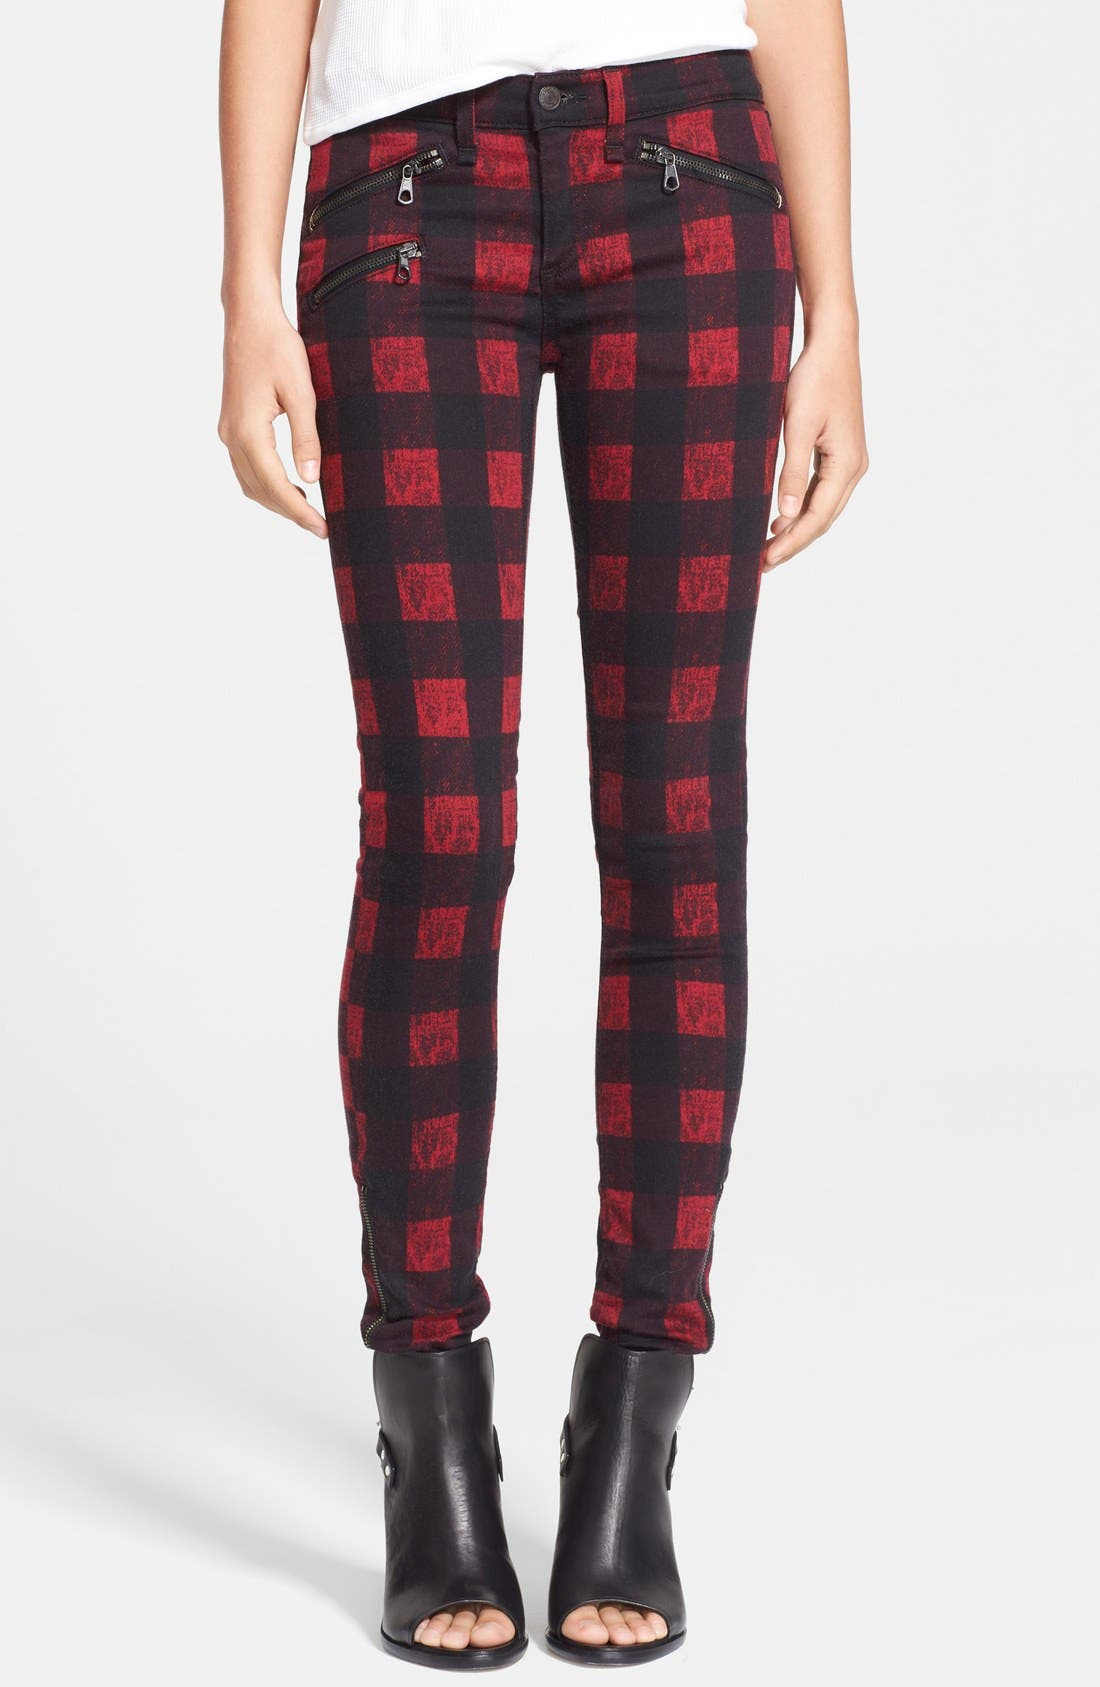 Alternate Image 1 Selected - rag & bone/JEAN Zip Detail Print Denim Leggings (Red Buffalo)